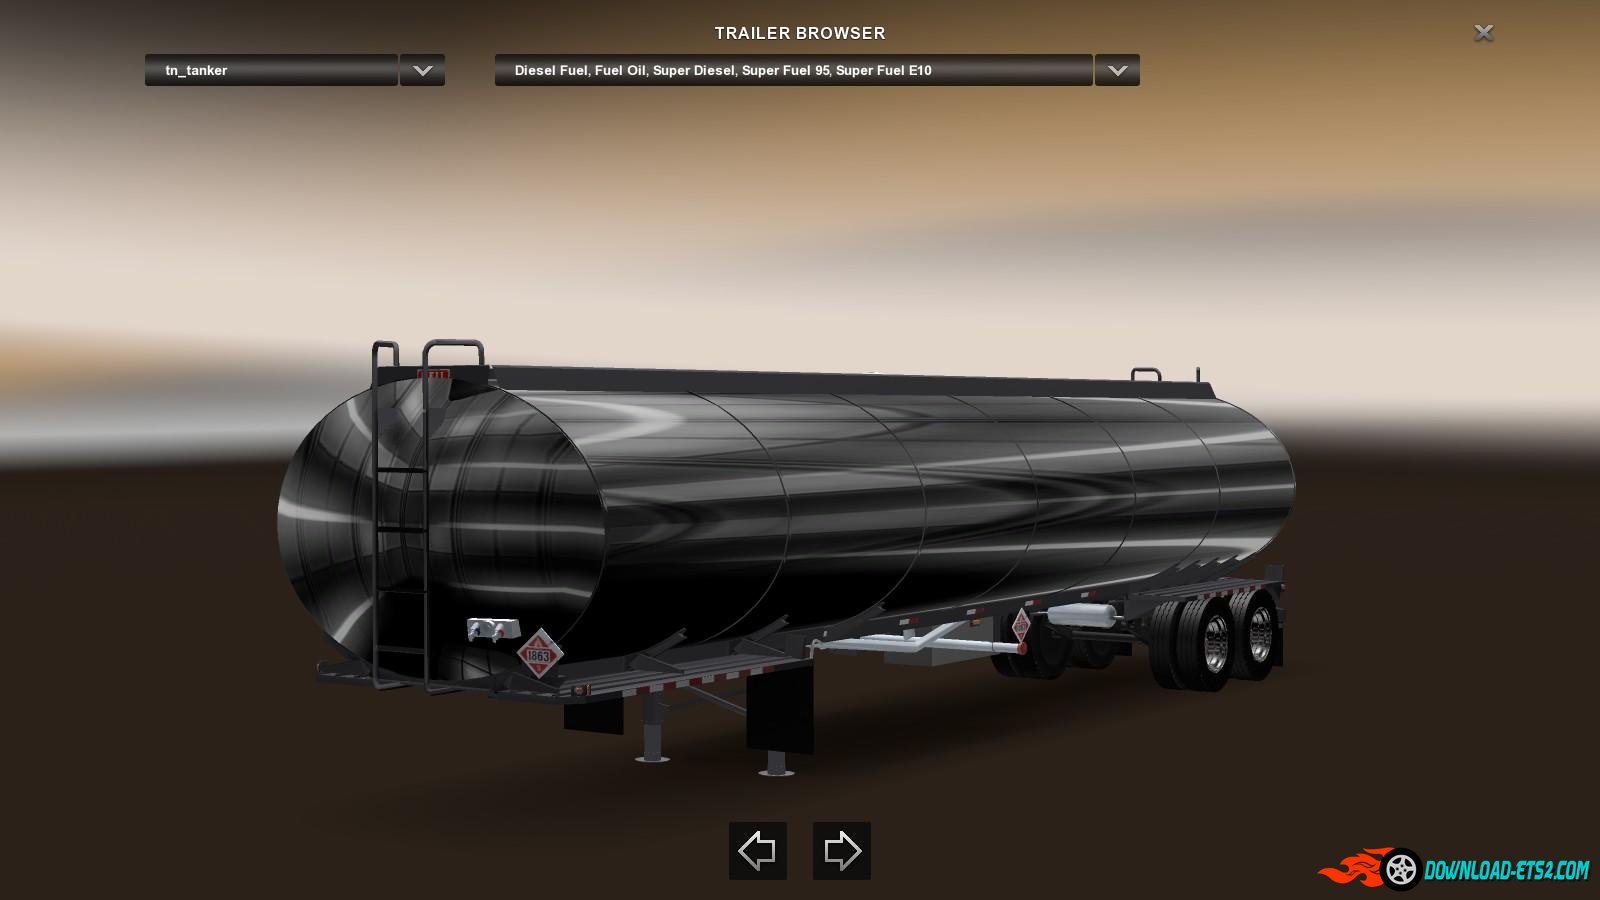 USA Chrome Tanker trailer